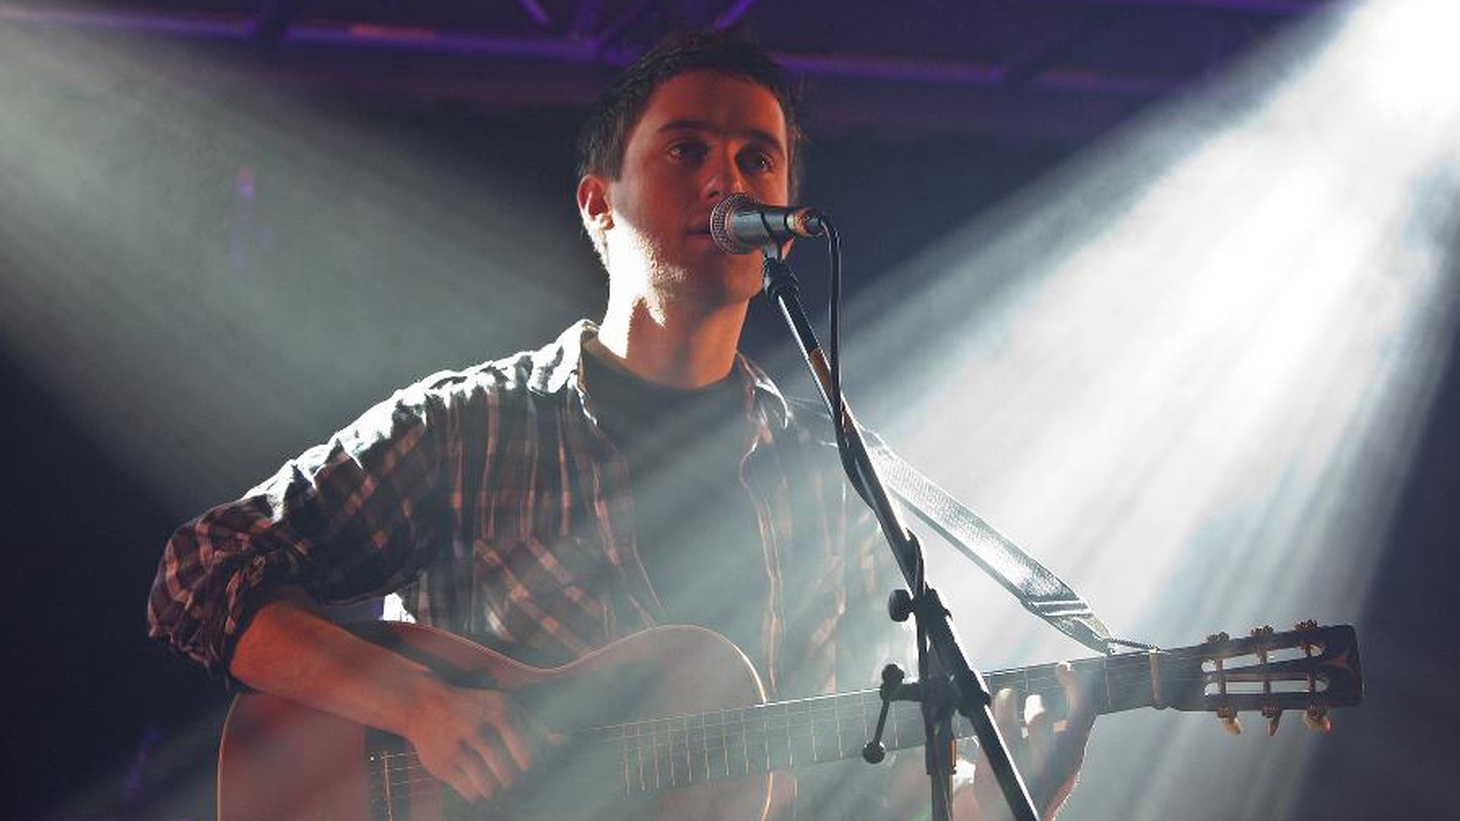 Conor O'Brien, aka Villagers, played every instrument on his new album while secluded in a coastal town north of Dublin.